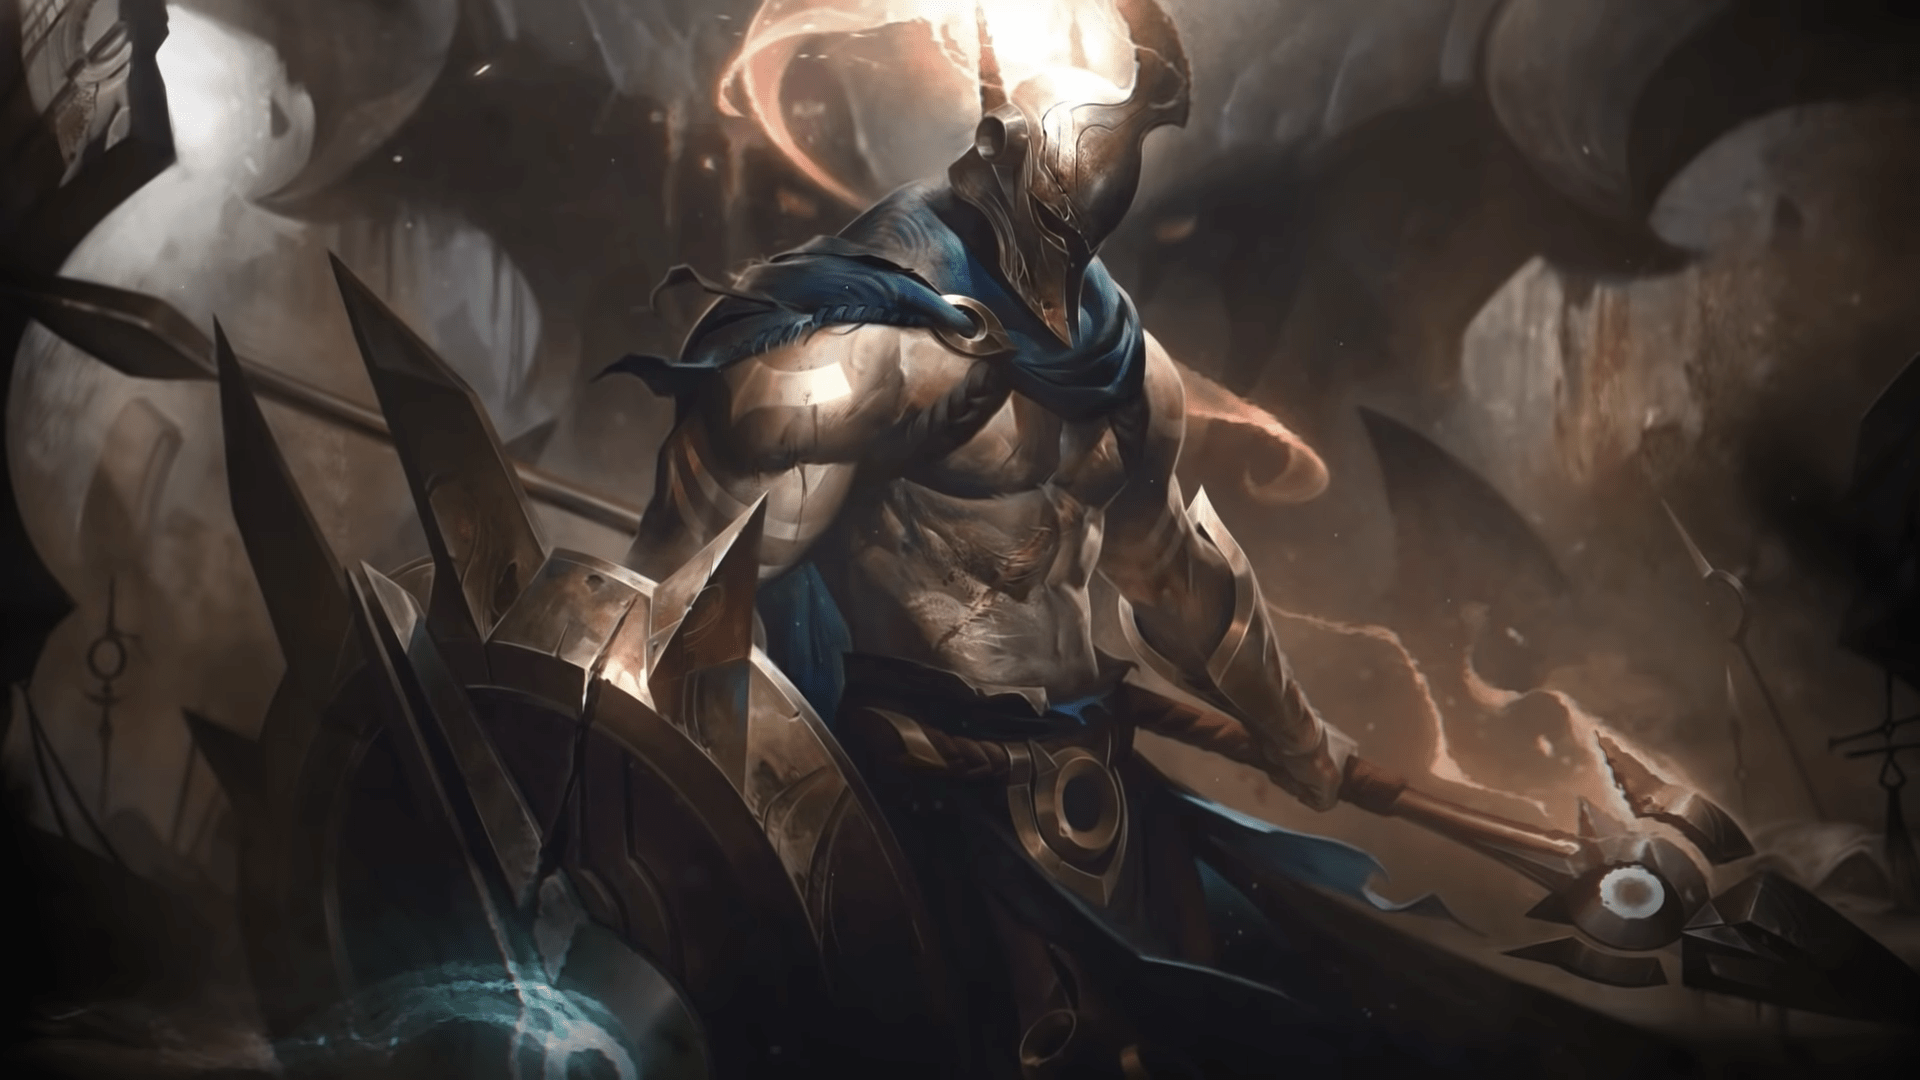 Riot Previewed All New Mythic Items Coming Into League Of Legends Preseason 2021 In Next Months